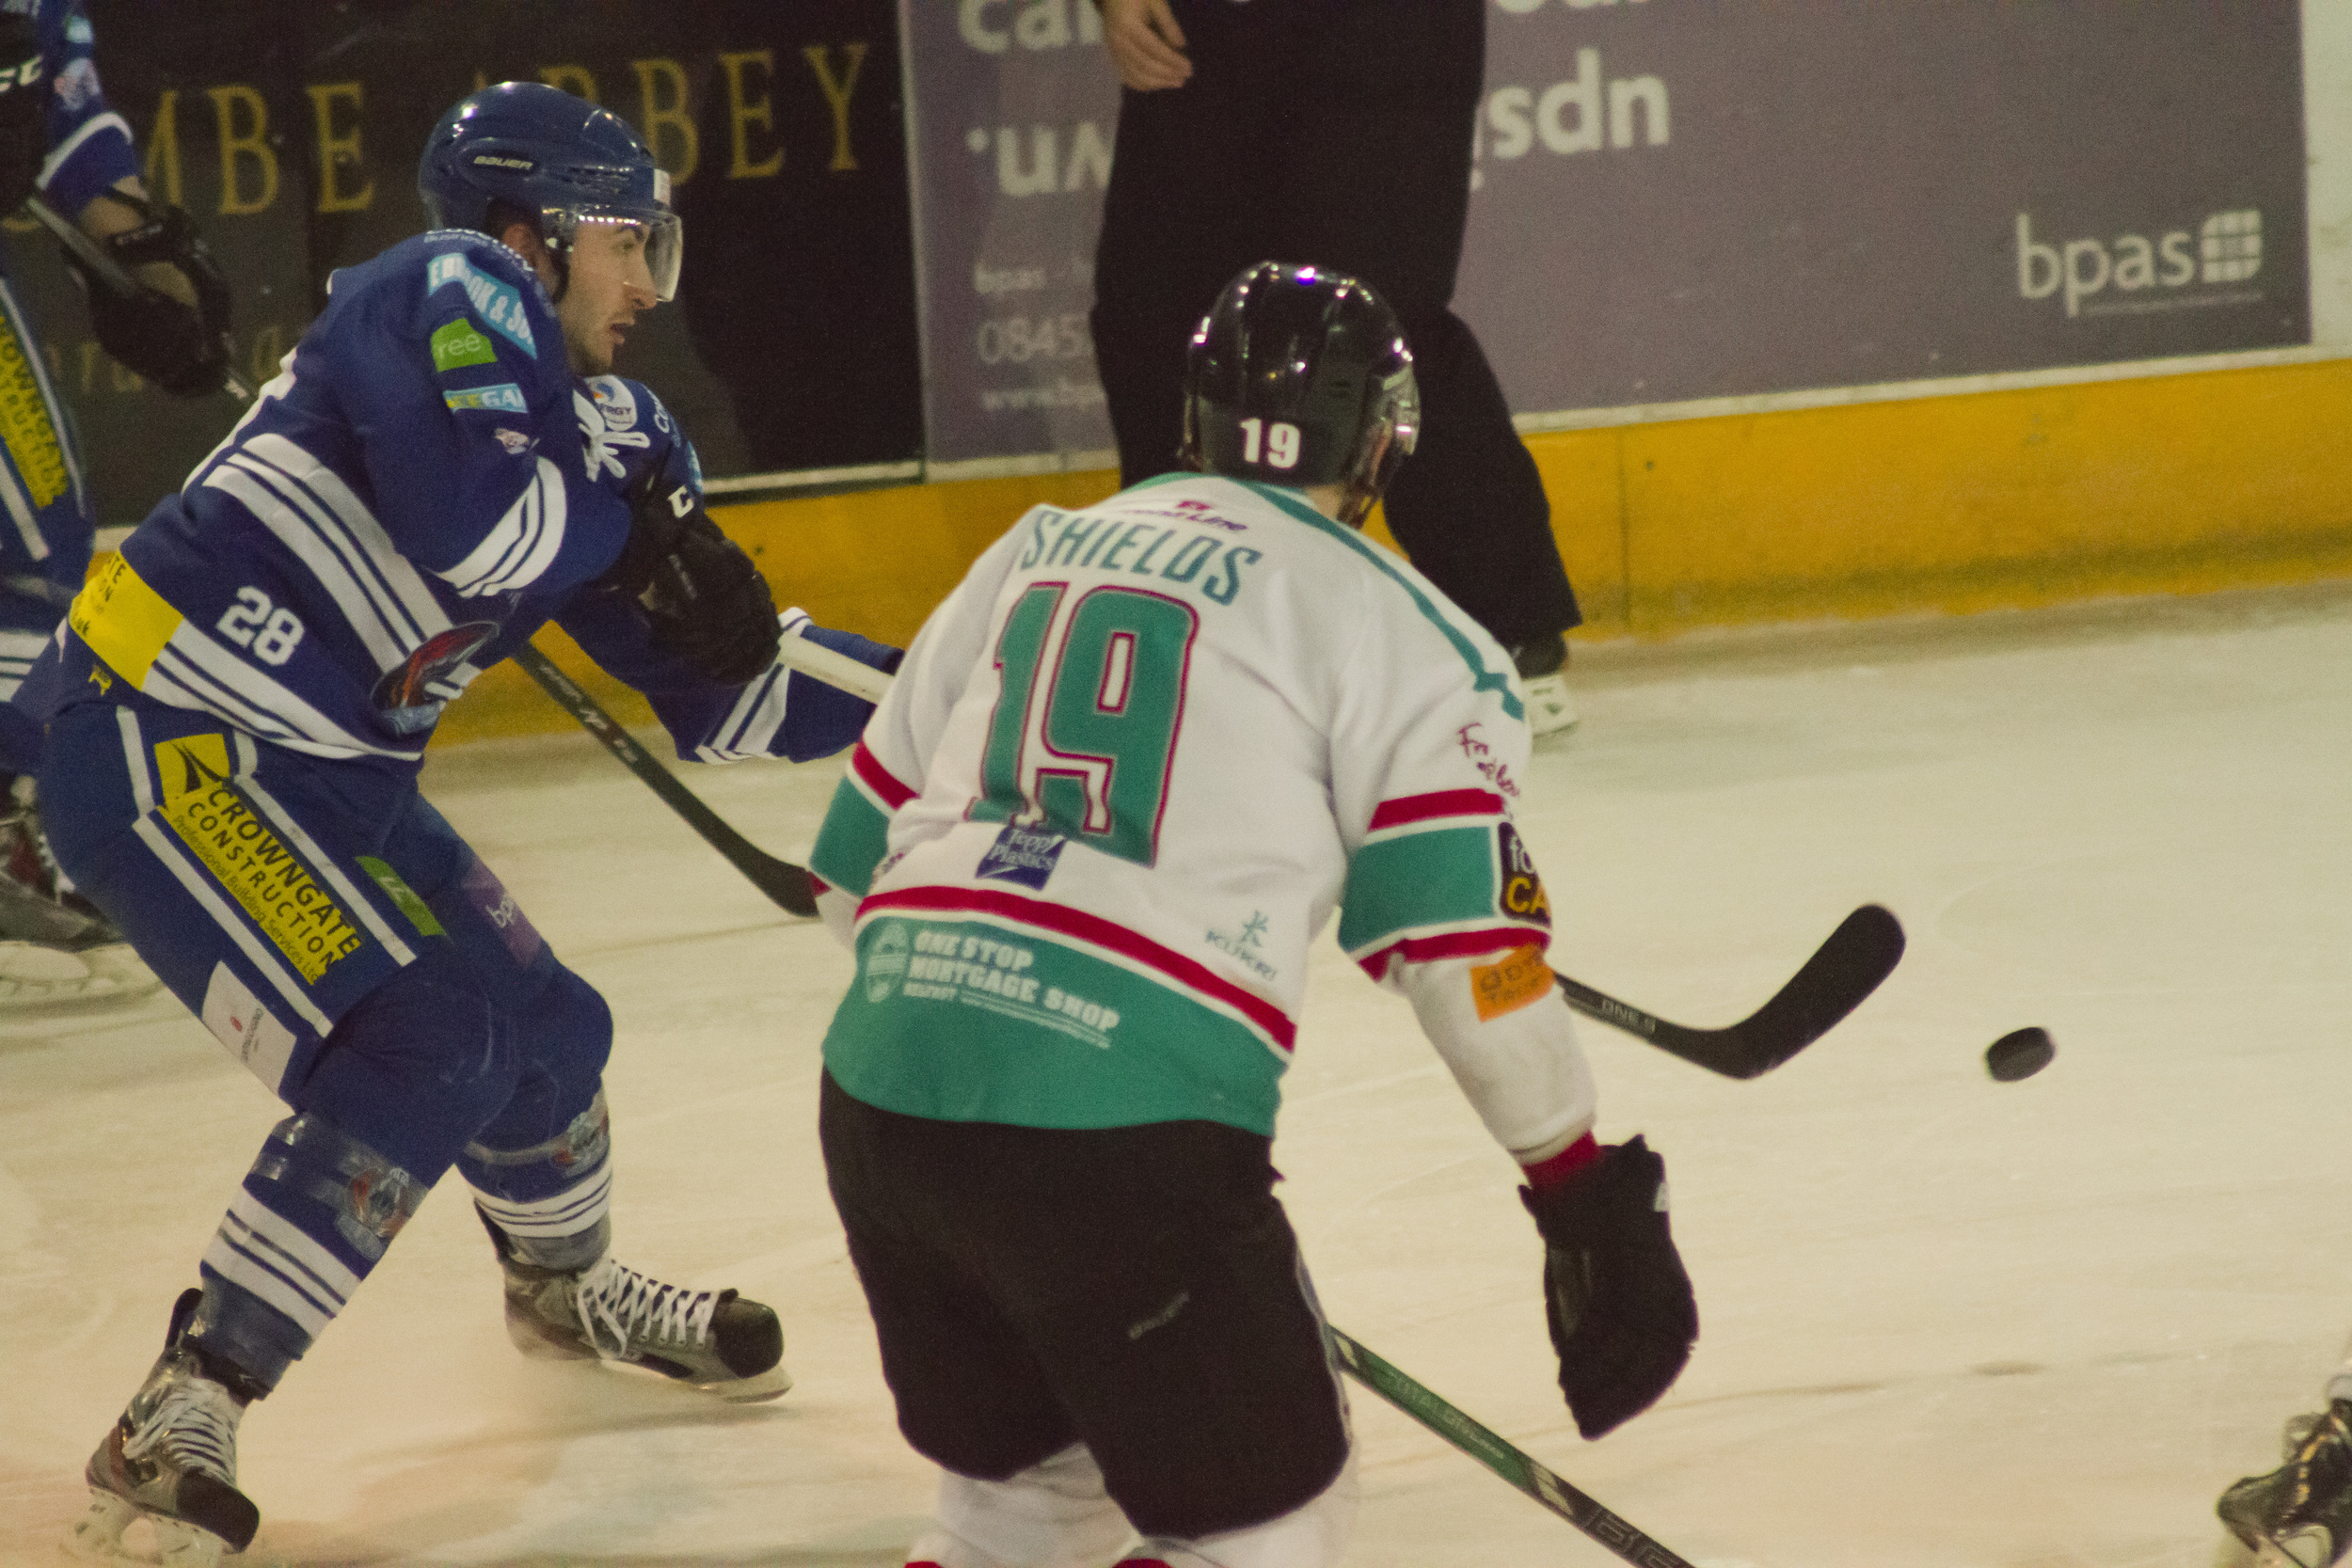 Again the moment here is having the puck in shot, with the Coventry Blaze player (blue) seen to have just released it to go up the rink.